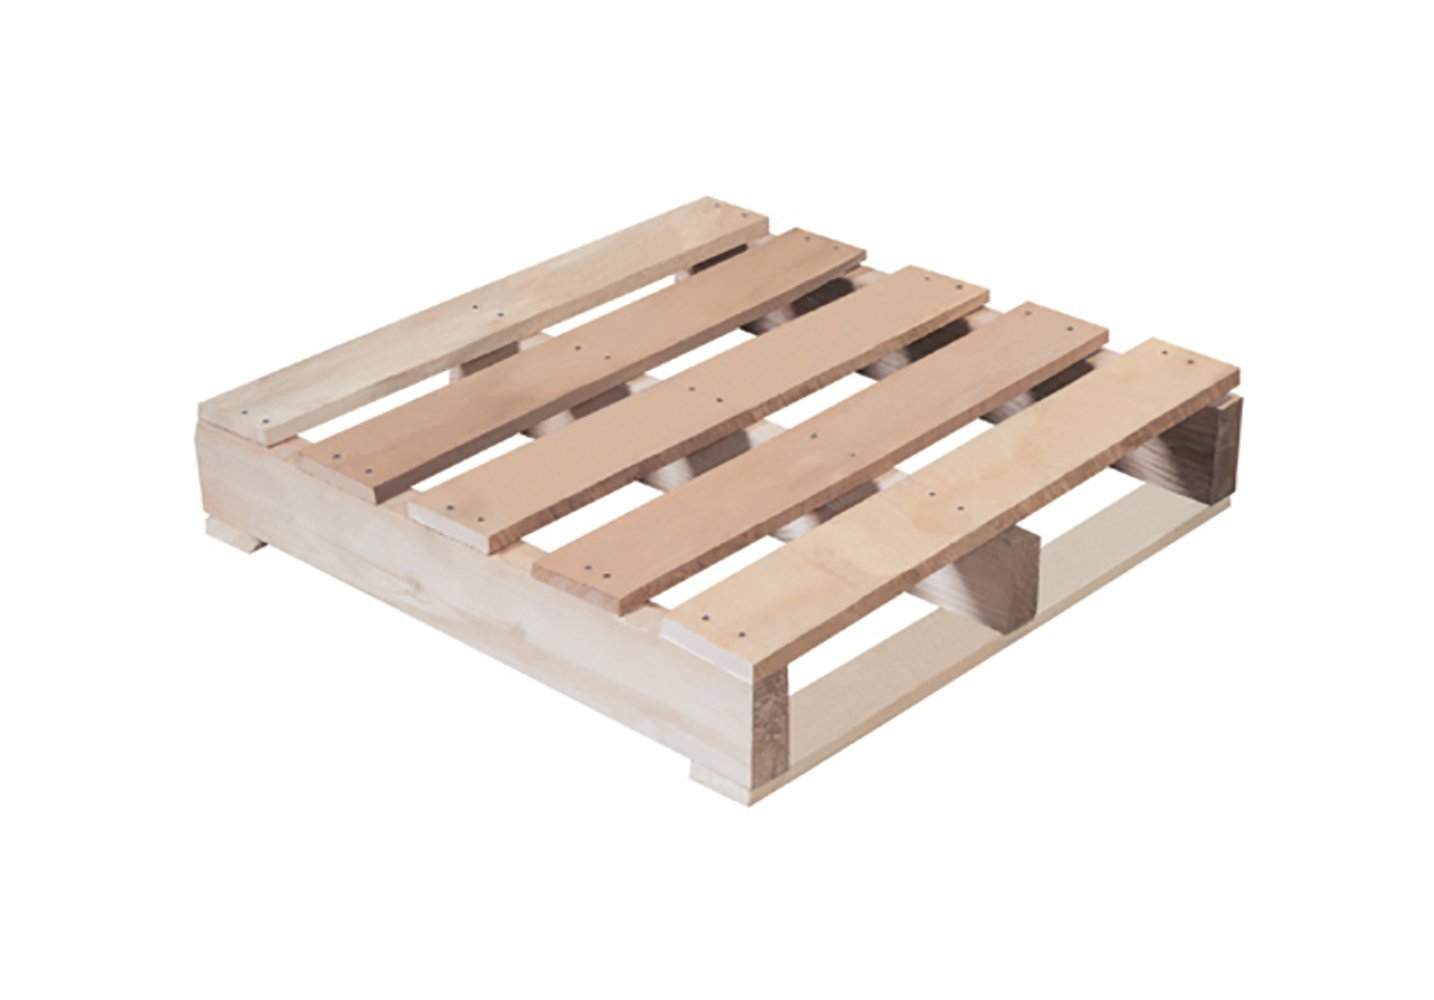 RetailSource 24'' x 24'' x 5 1/2'' #1 Recycled 1000 Lbs. Capacity Wood Pallet  (recycled pallet appearance may vary)